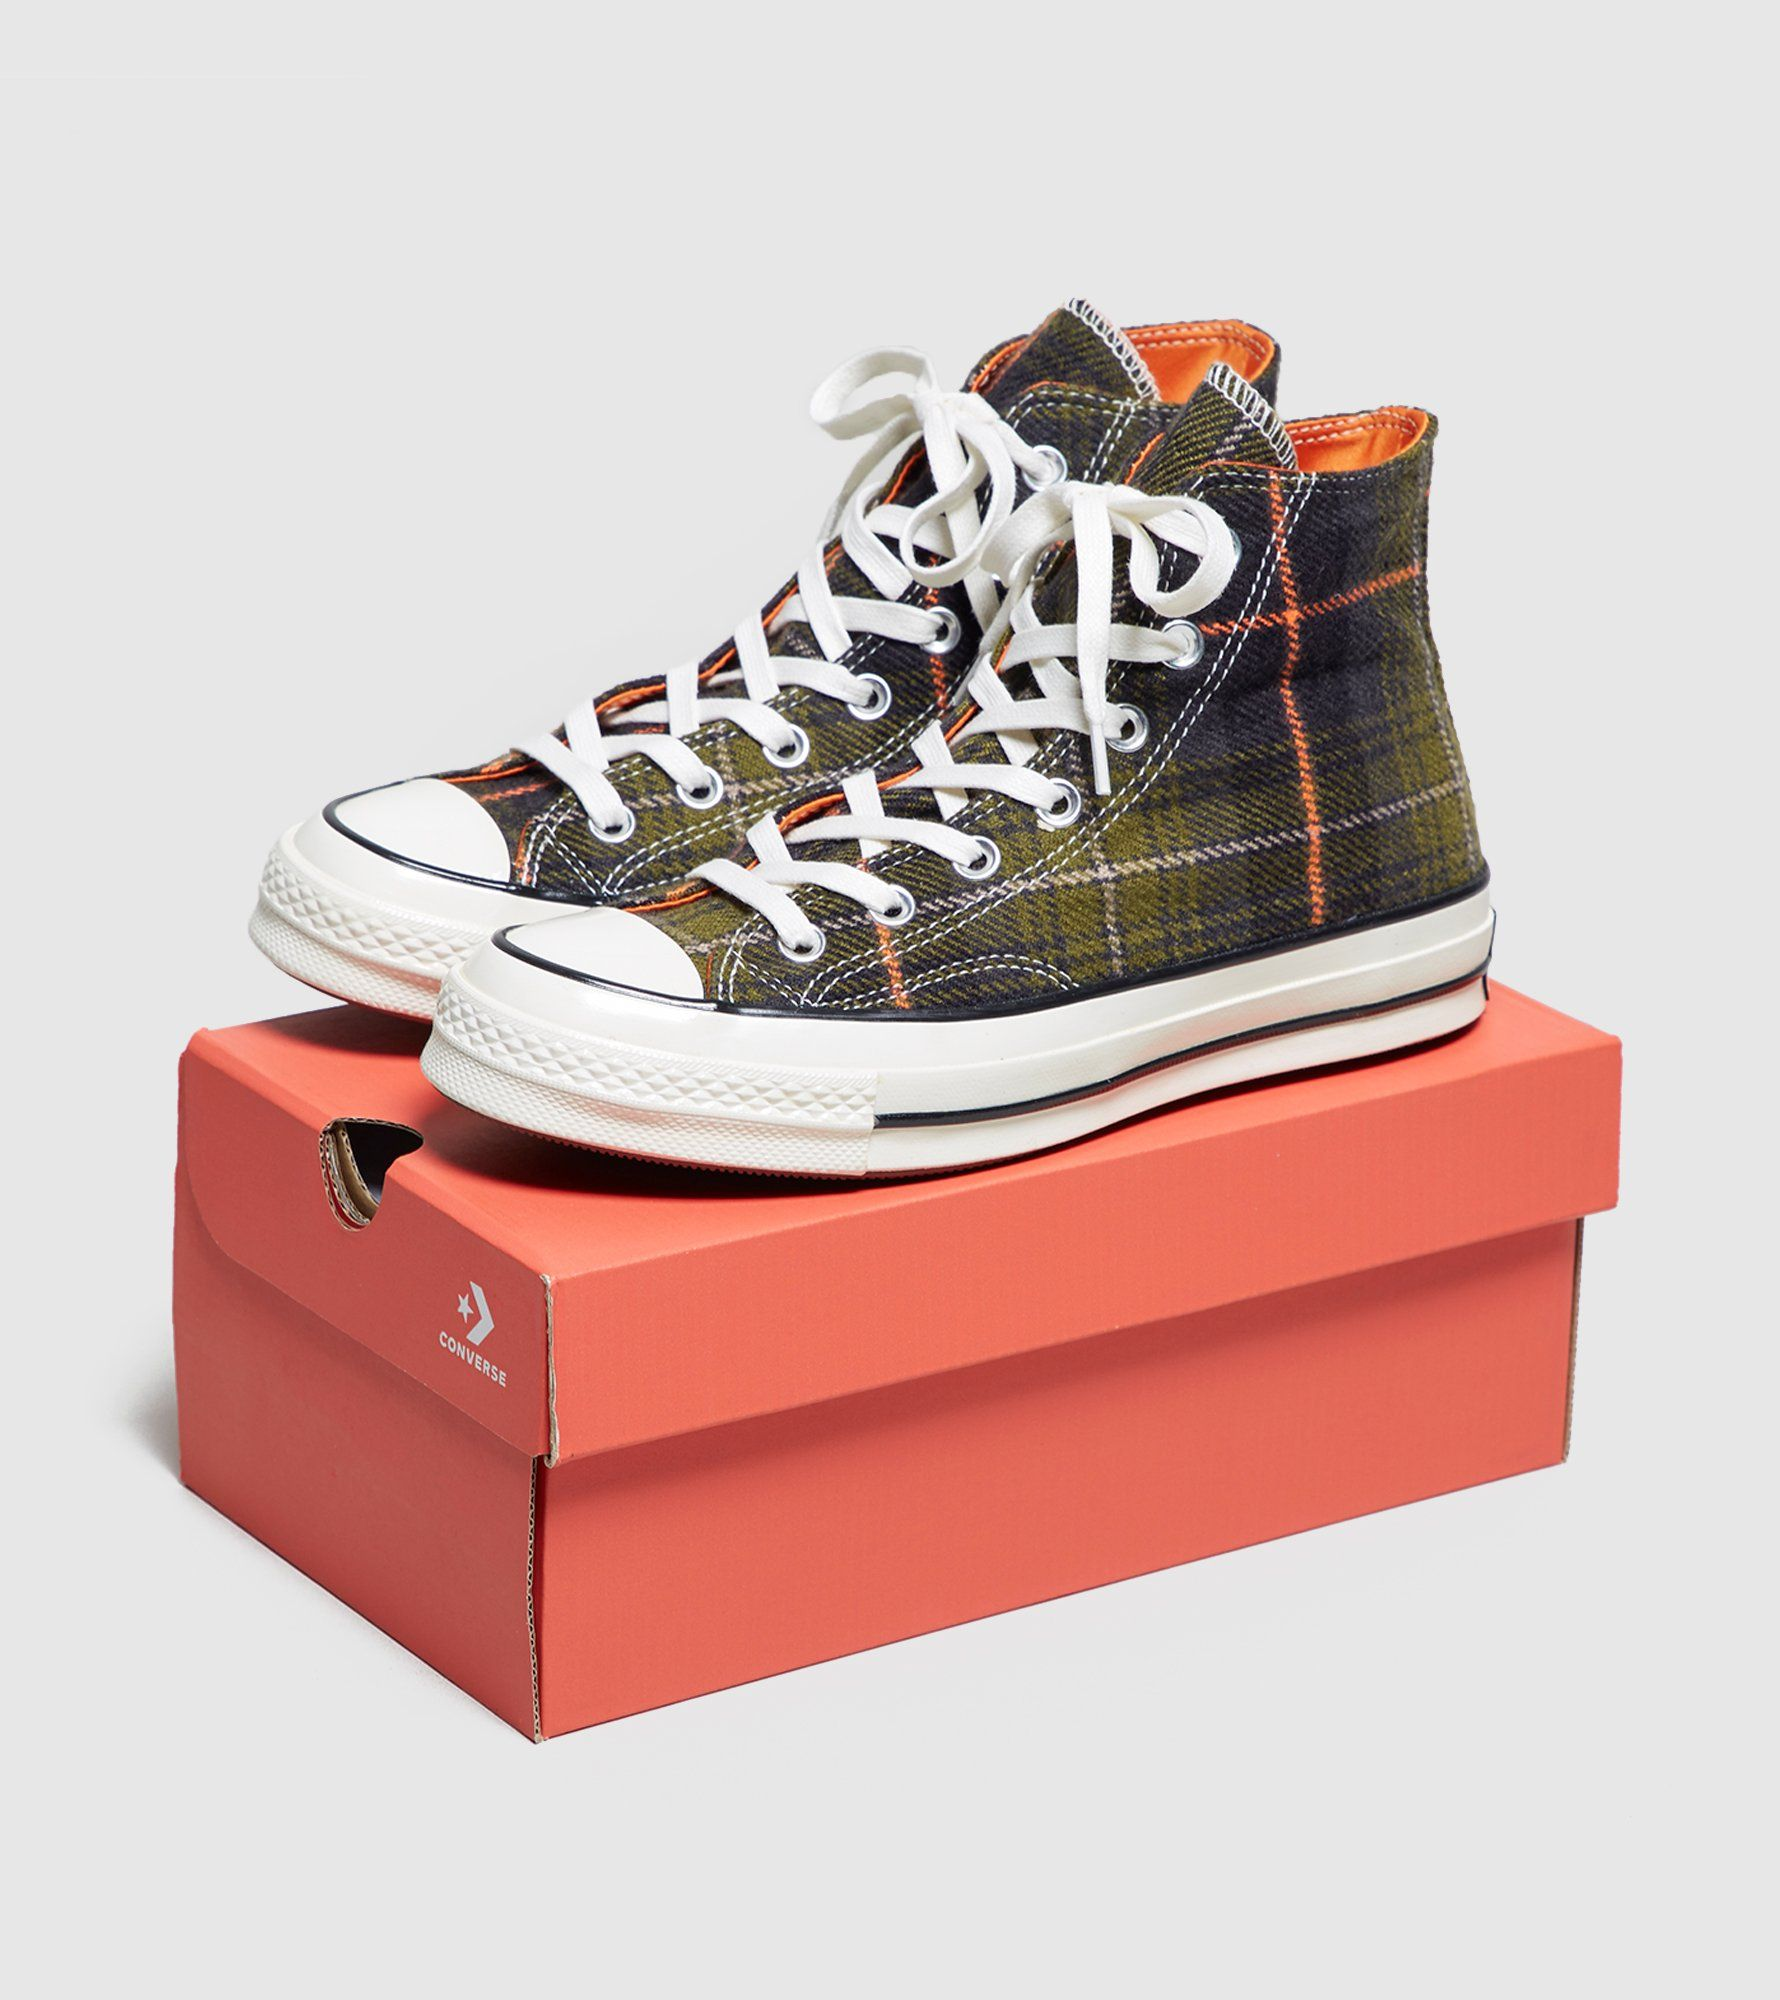 Converse Chuck Taylor All Star 70's High Plaid Dam